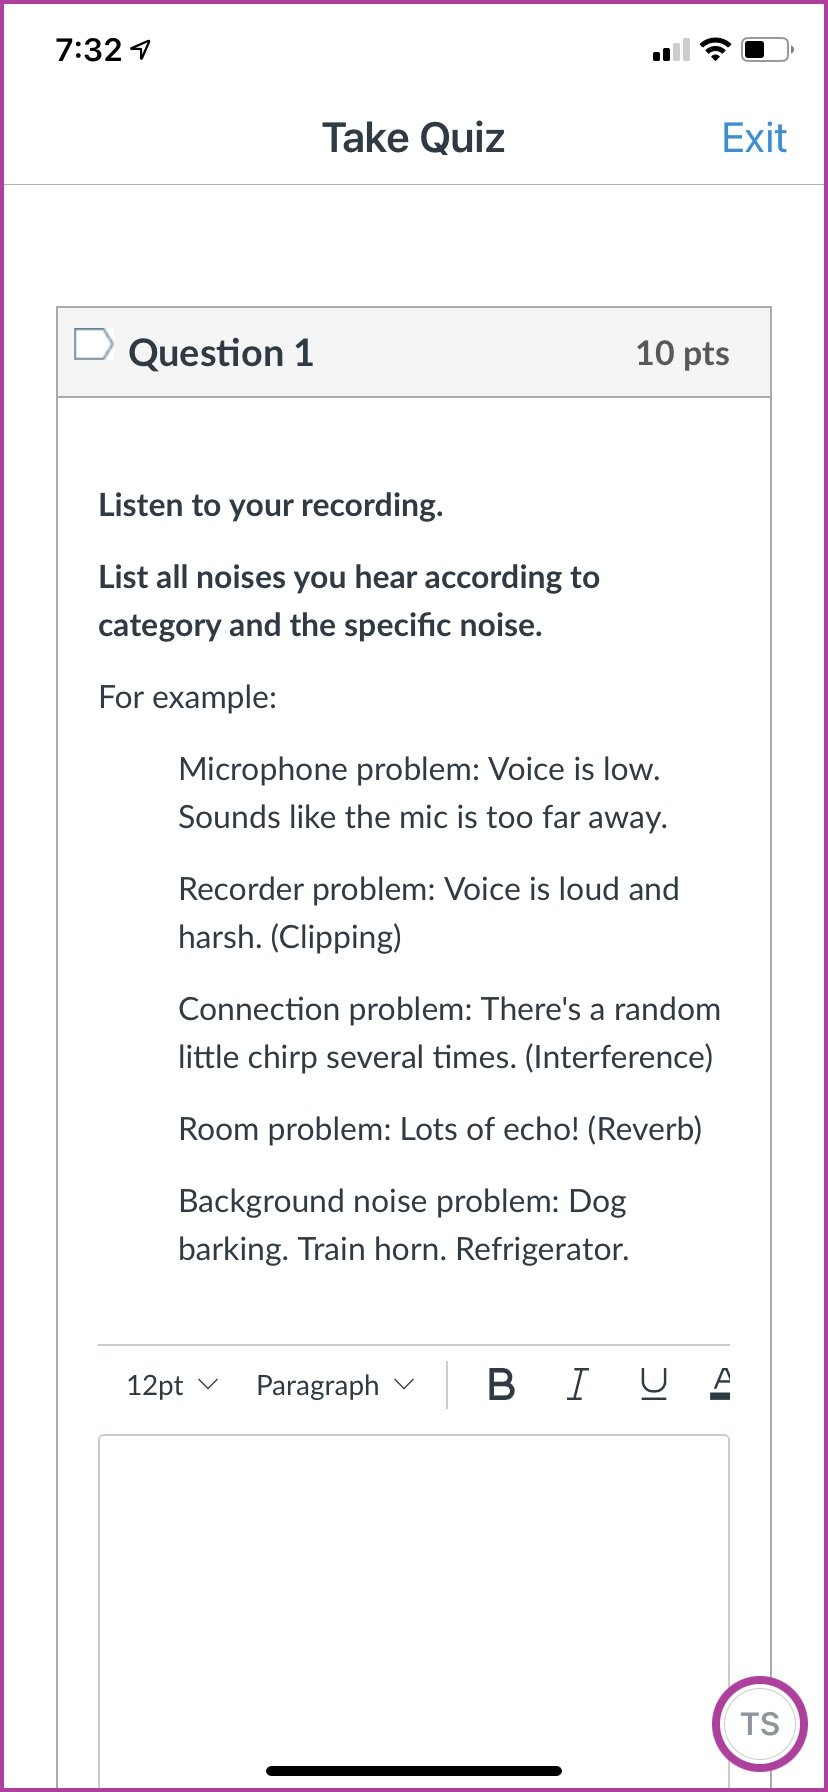 Example of the Analysis portion of their project. Instructions tell them to listen to their recording and identify all the noise problems they hear based on what they've learned about the 5 different kinds of noise.